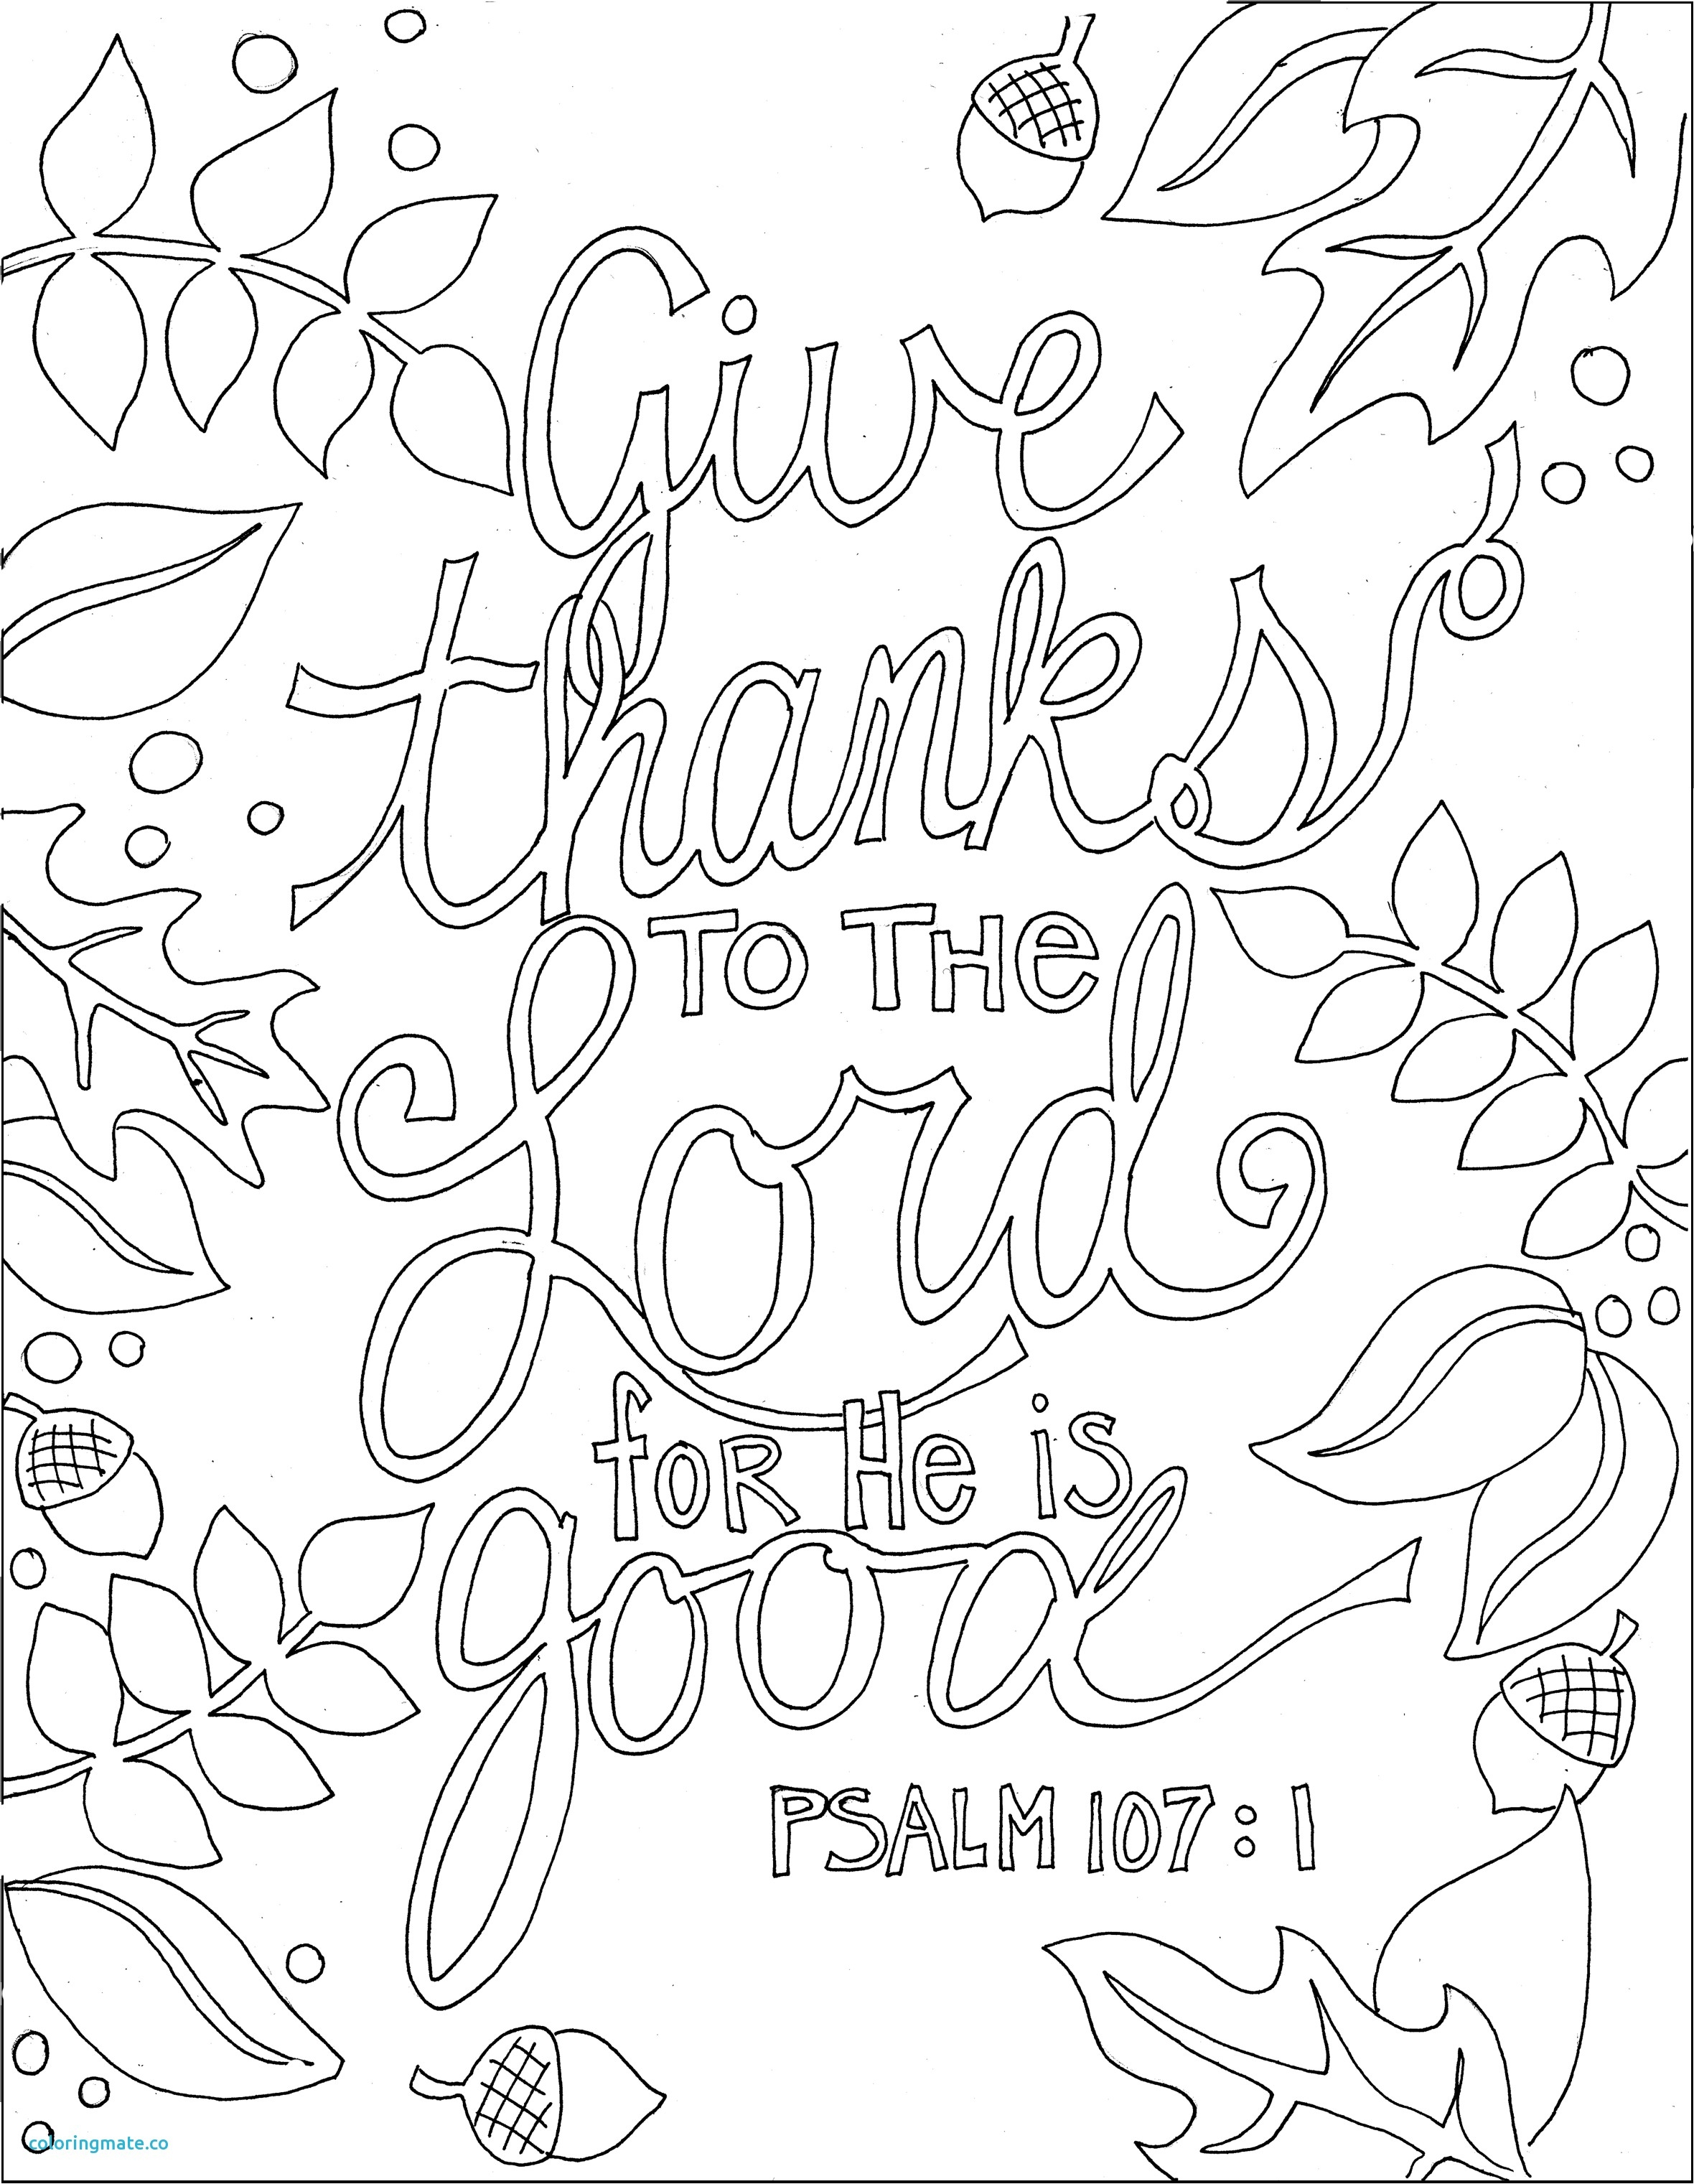 Awesome Adult Coloring Pages Scripture Verses Gallery Collection Of Free Printable Adult Coloring Pages Hymns & Scripture Our Printable